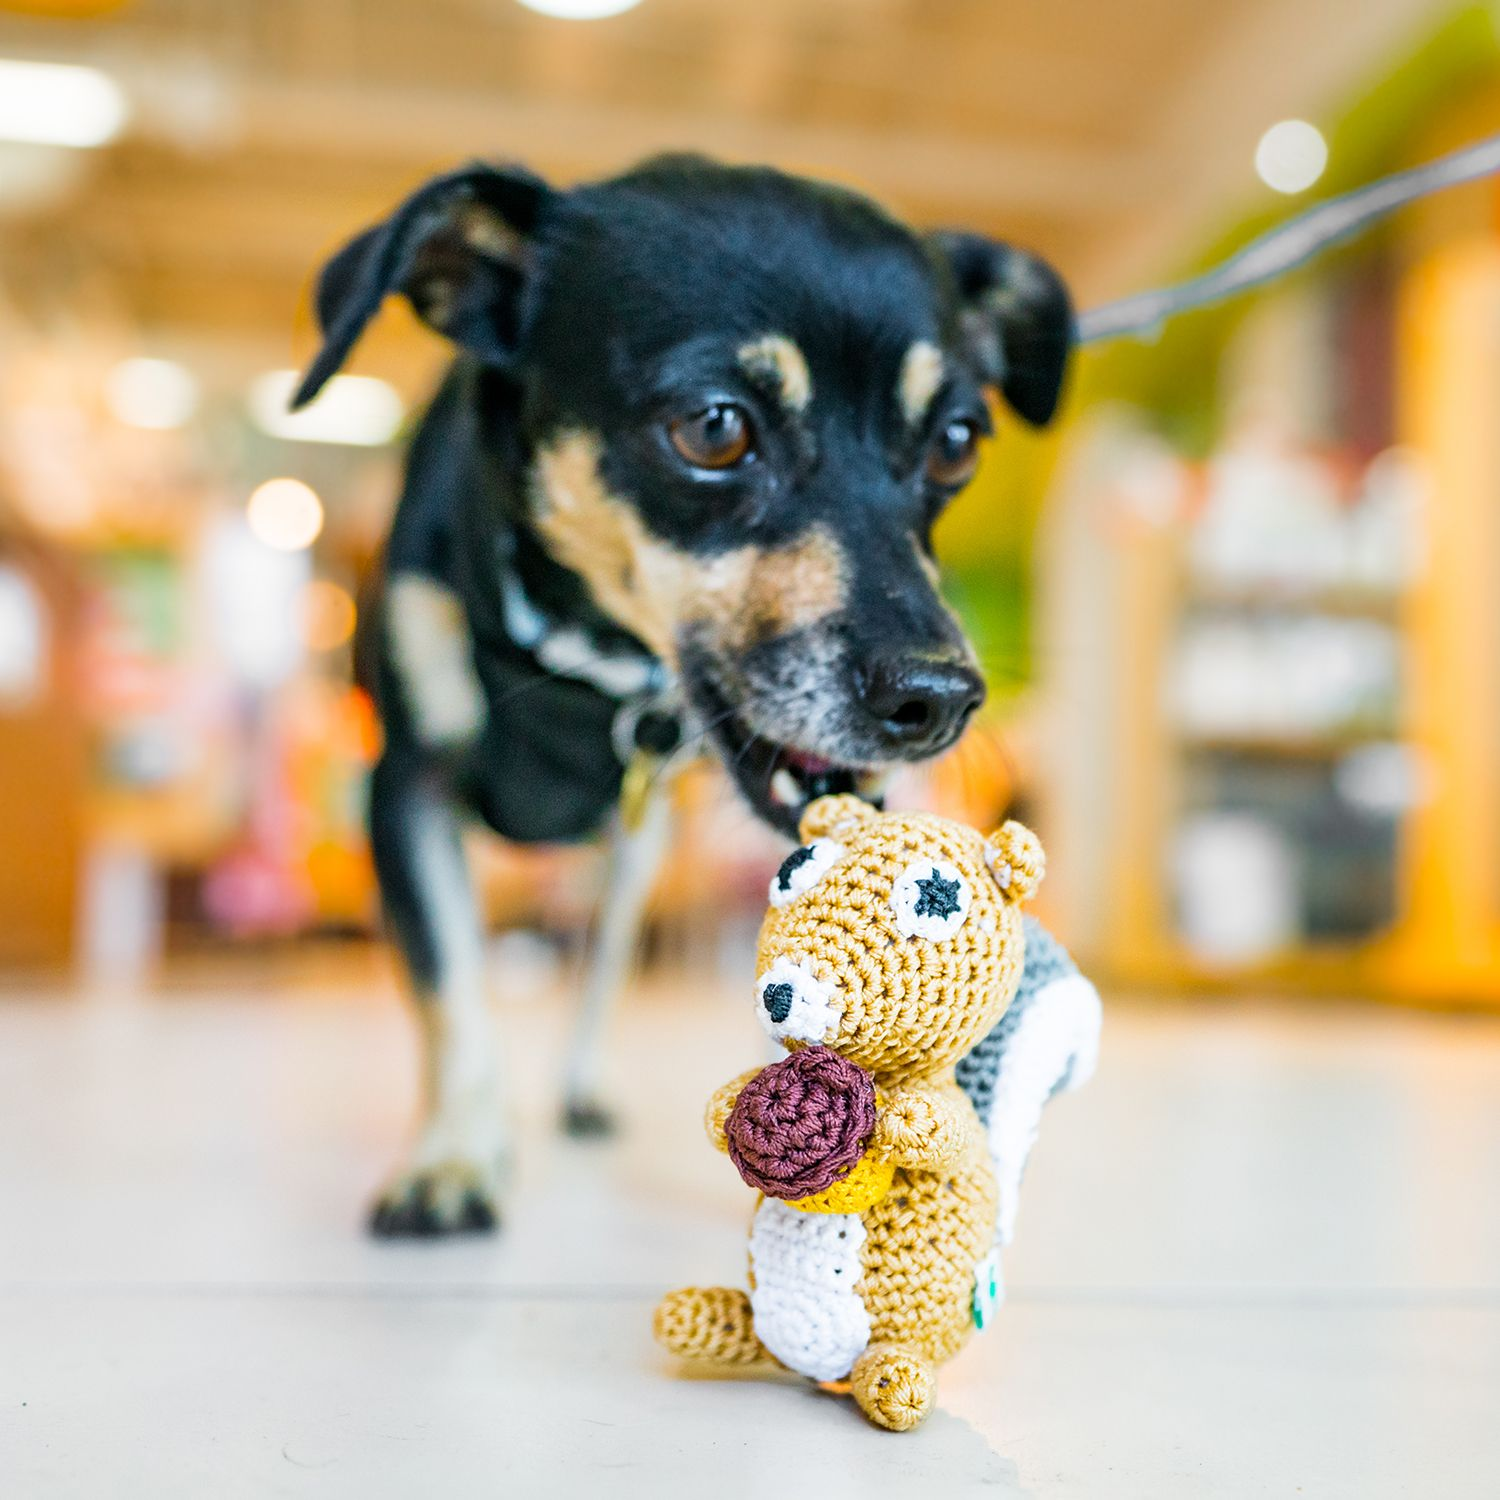 Shop Dogo S Squirrel Toy At Your Local Healthy Spot Today Shop